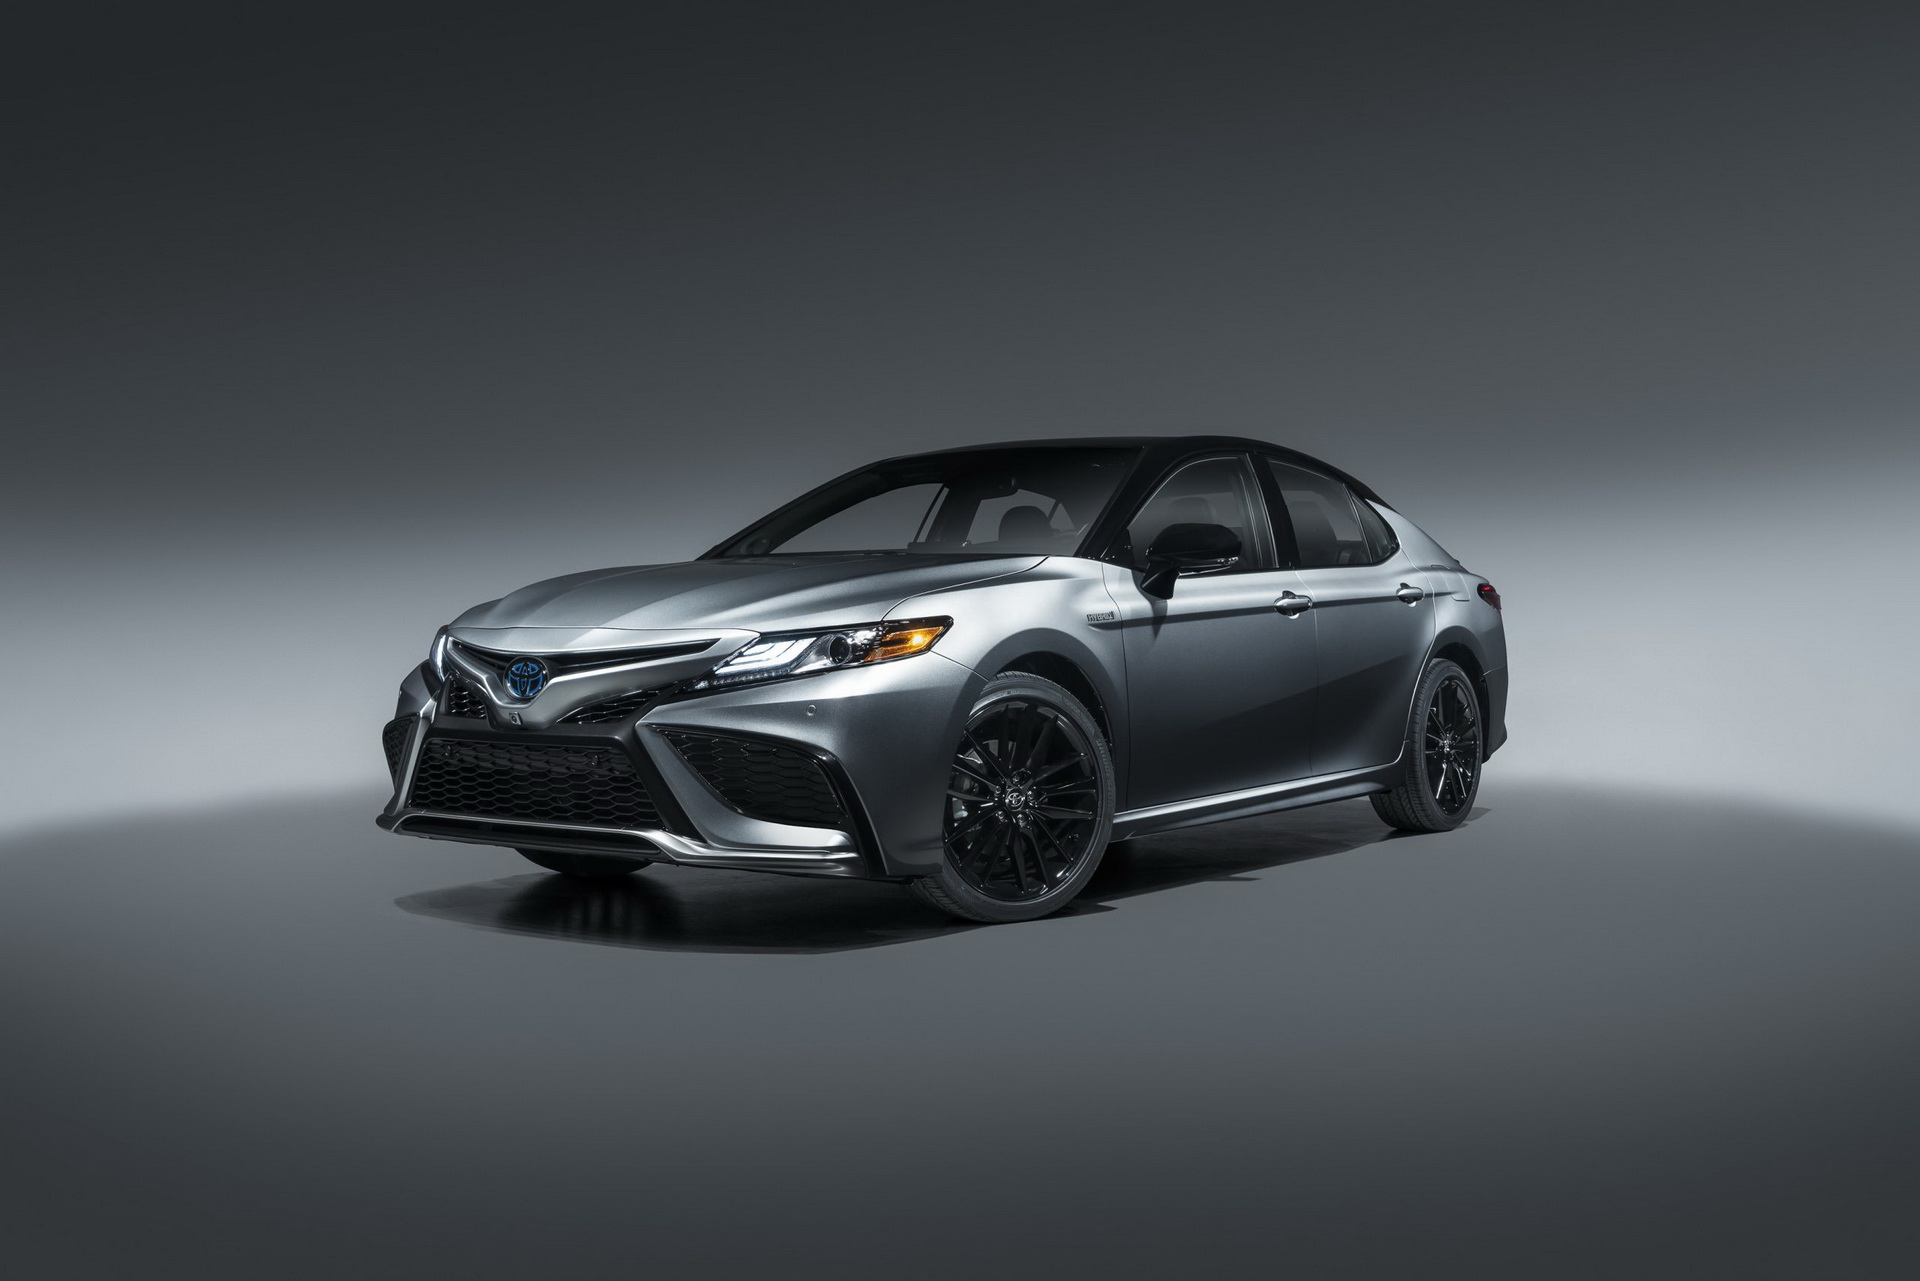 Camry-cafeautovn-3